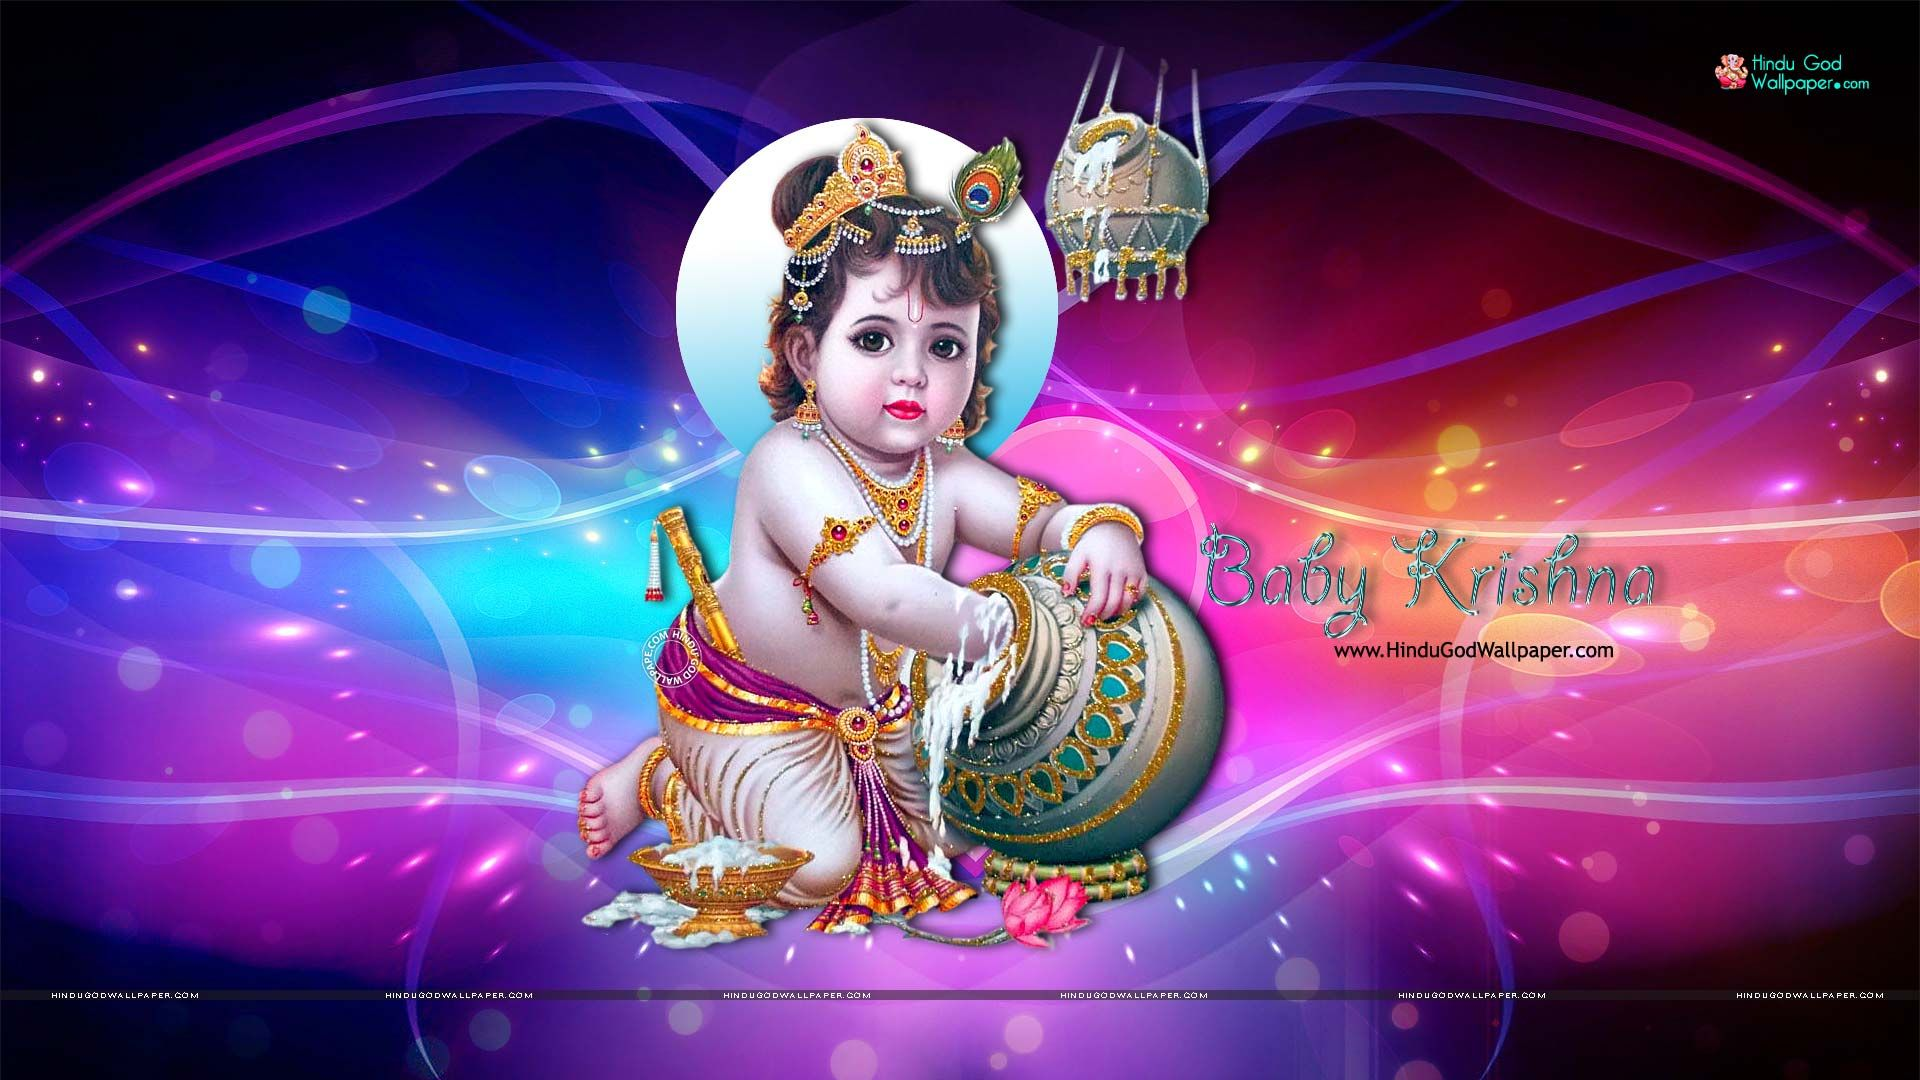 1080p Baby Krishna Hd Wallpapers Full Size Download In 2019